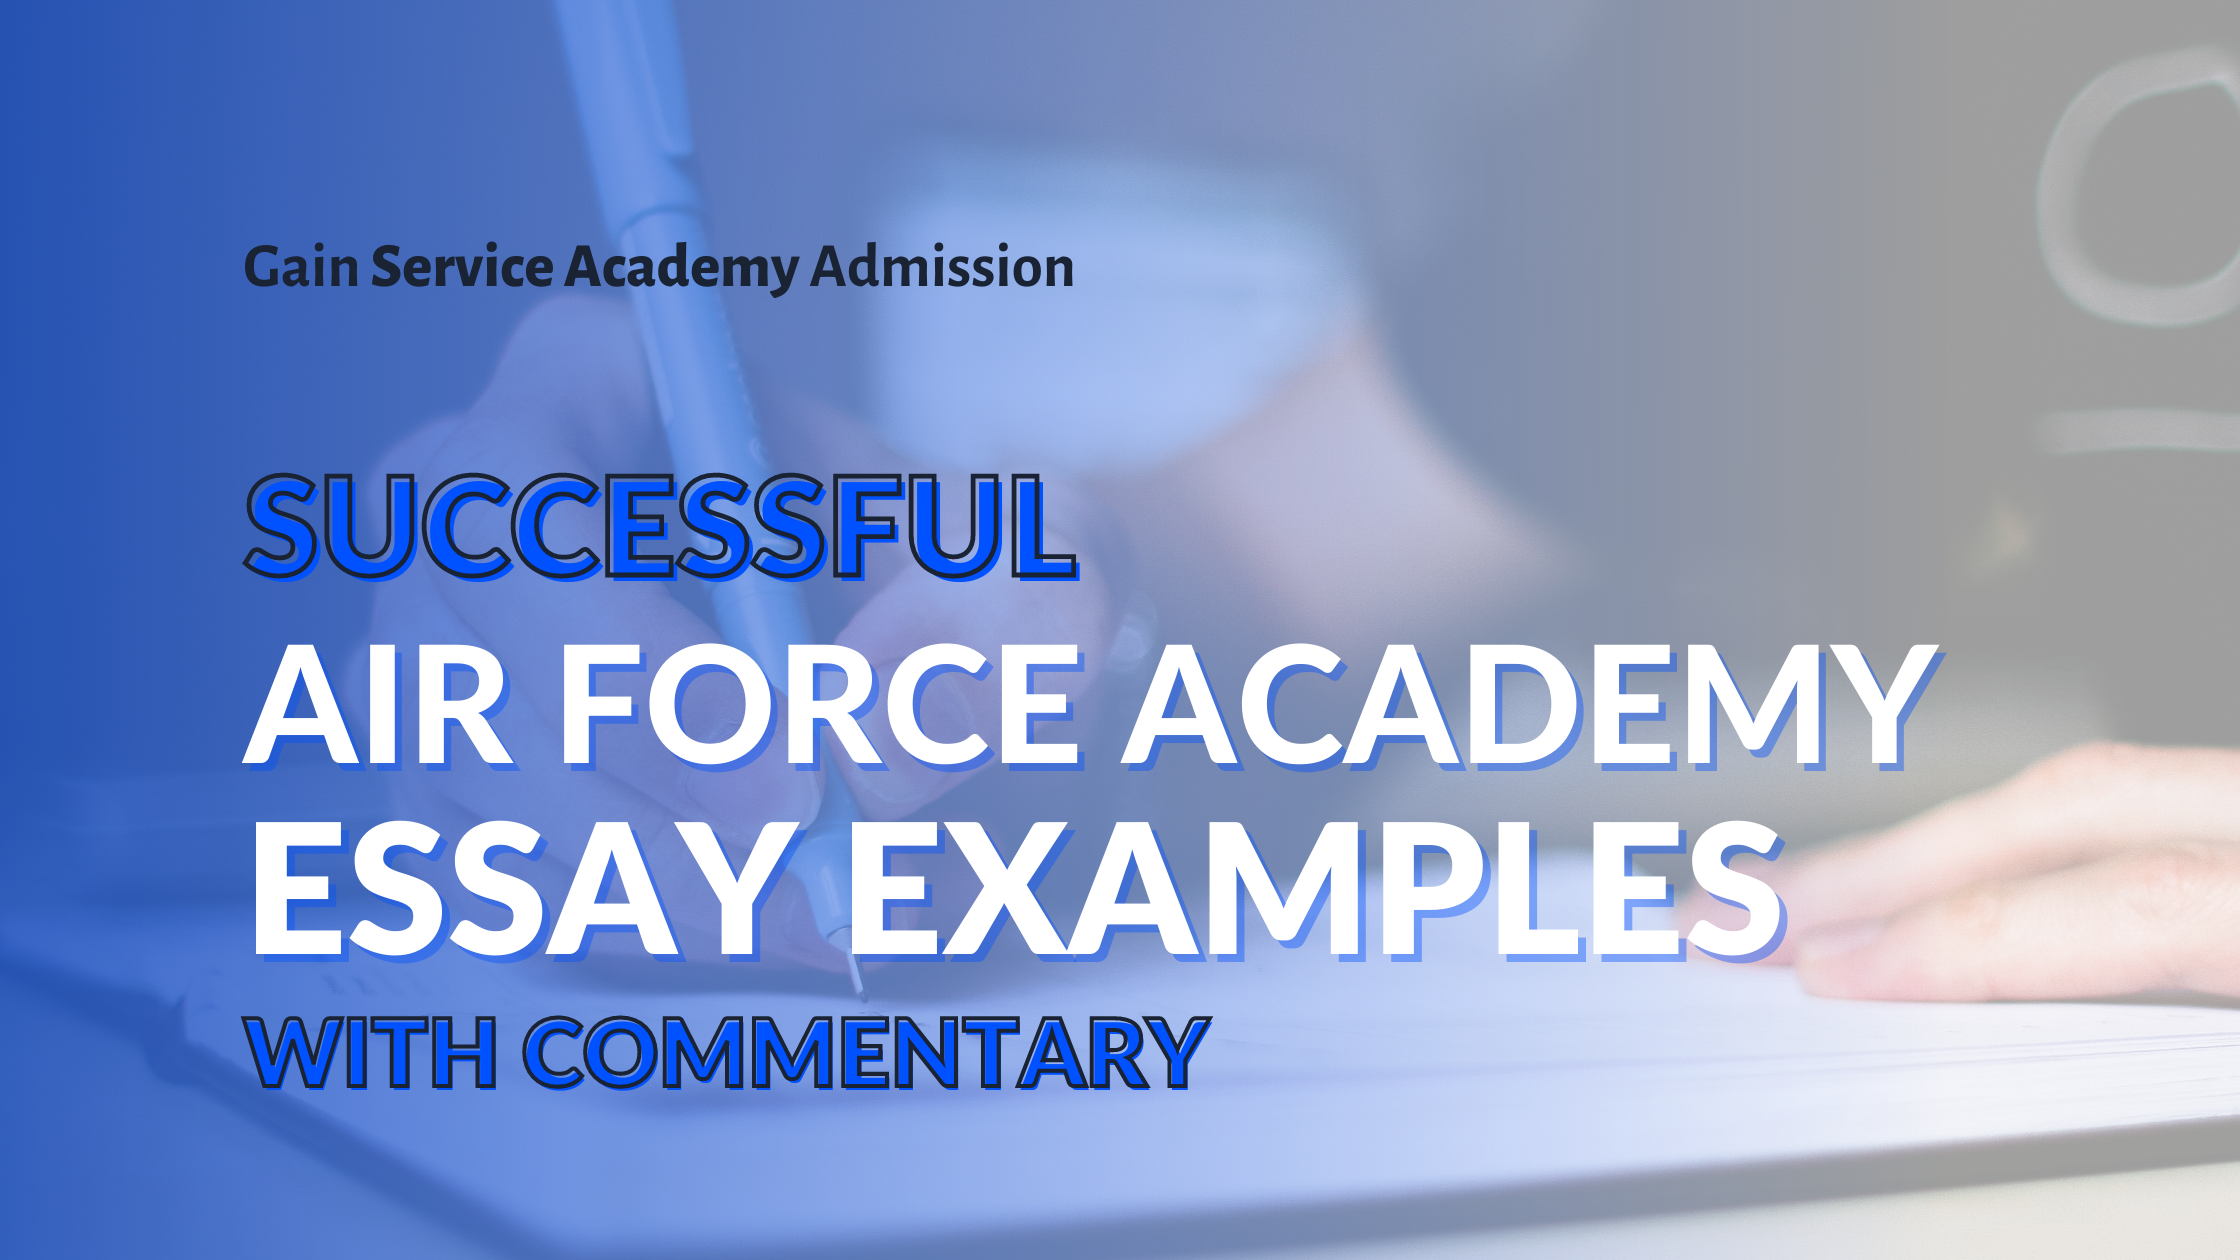 Successful Air Force Academy Essay Example Write Winning Essays Jag Personal Statement